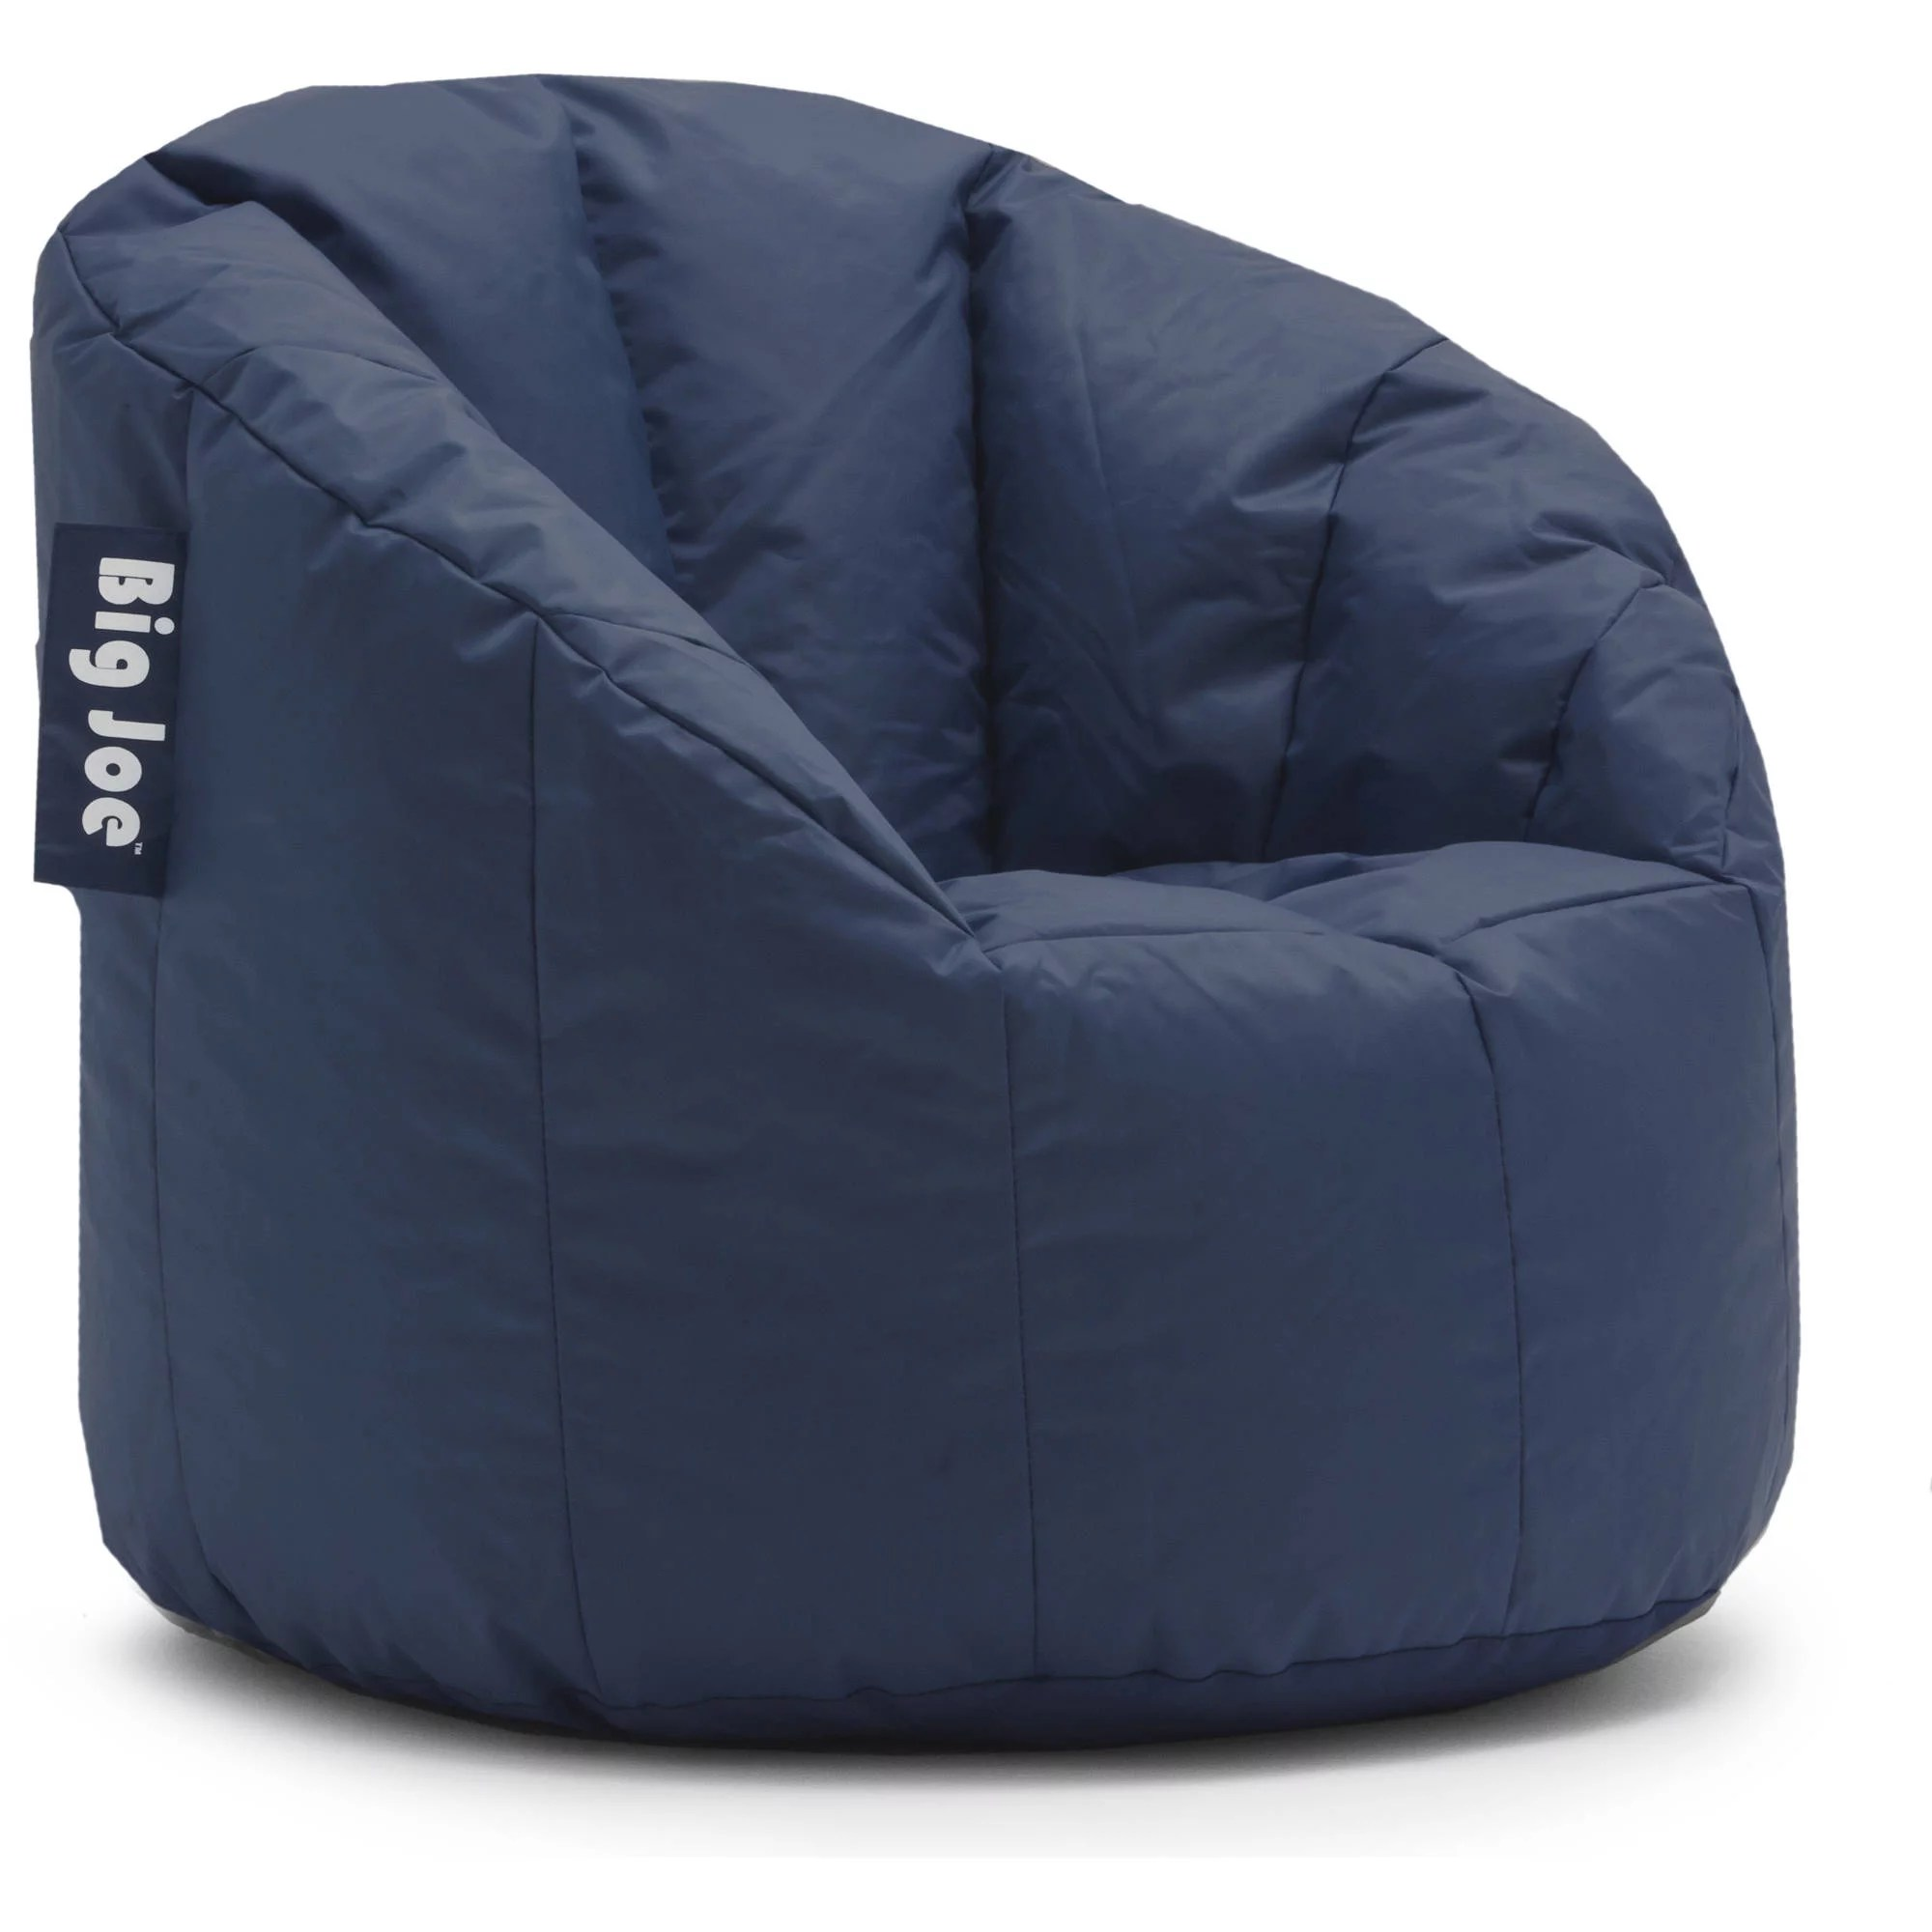 Bean Bags Chair Details About Big Joe Milano Large Bean Bag Bucket Chair Navy Gaming Living Room Furniture